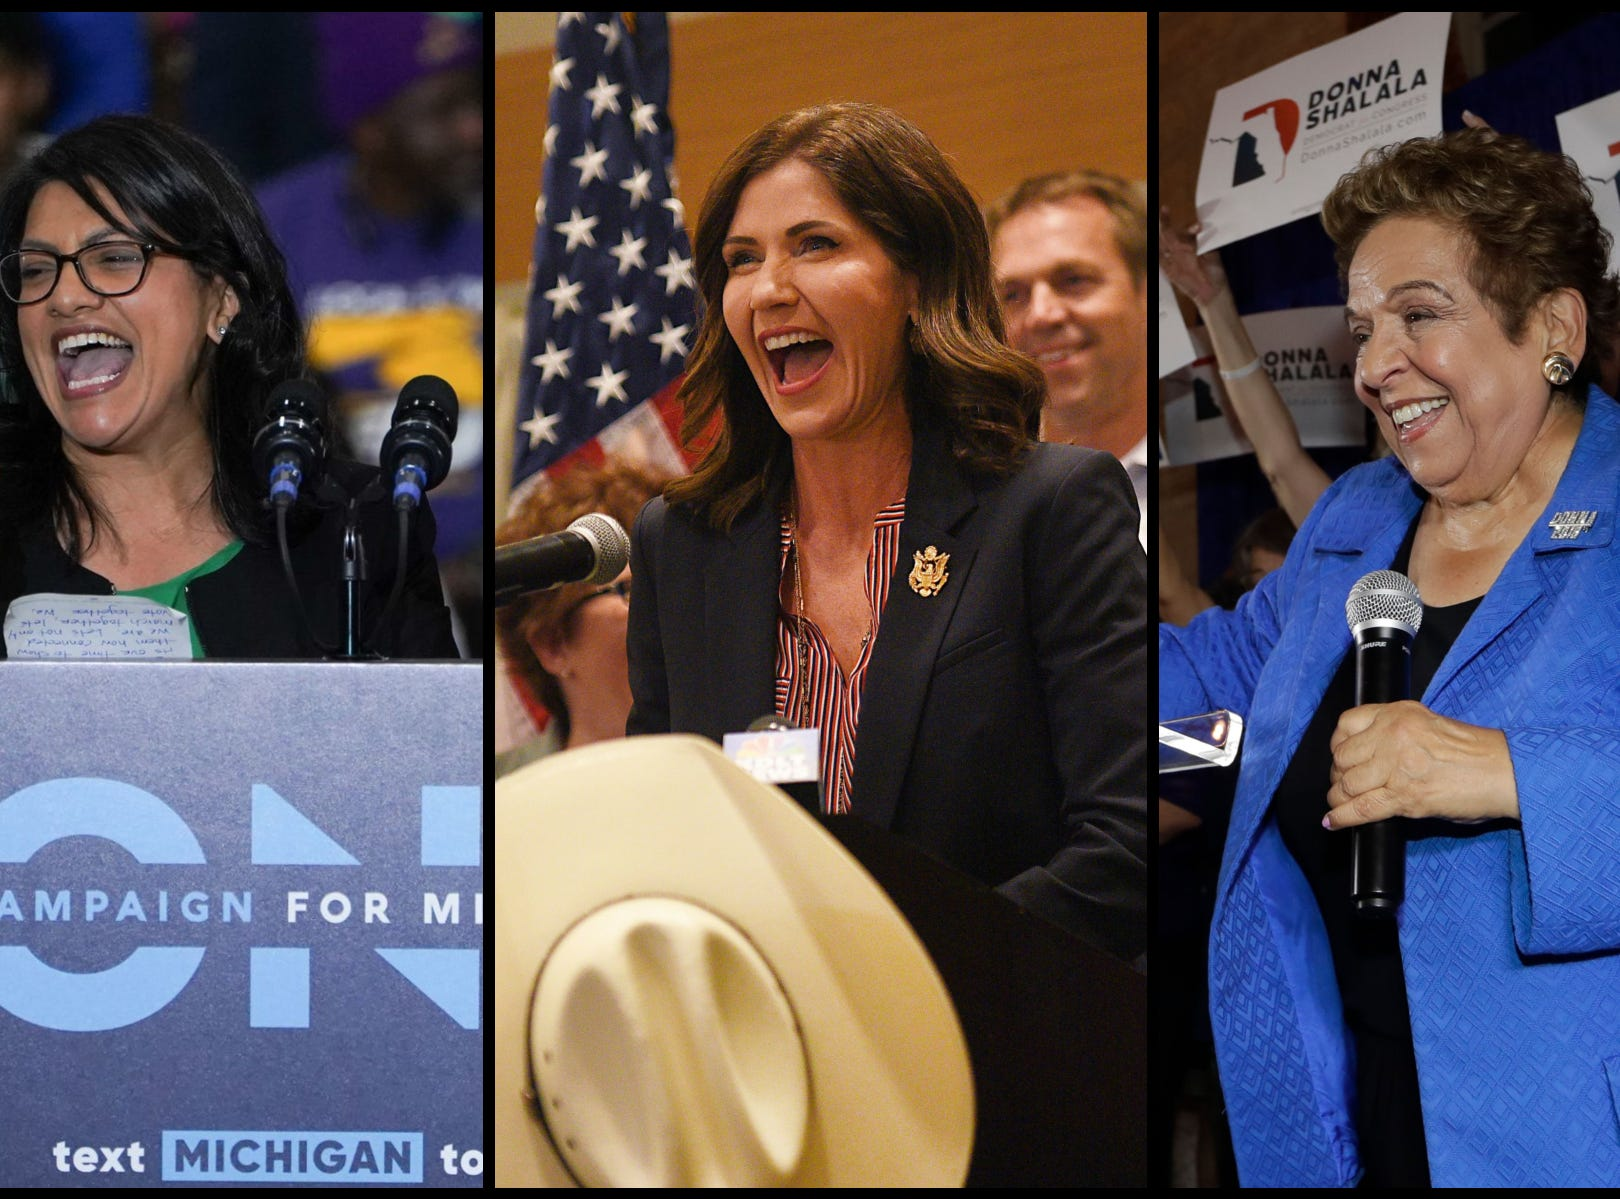 After historic election, what newly elected women said about children and families